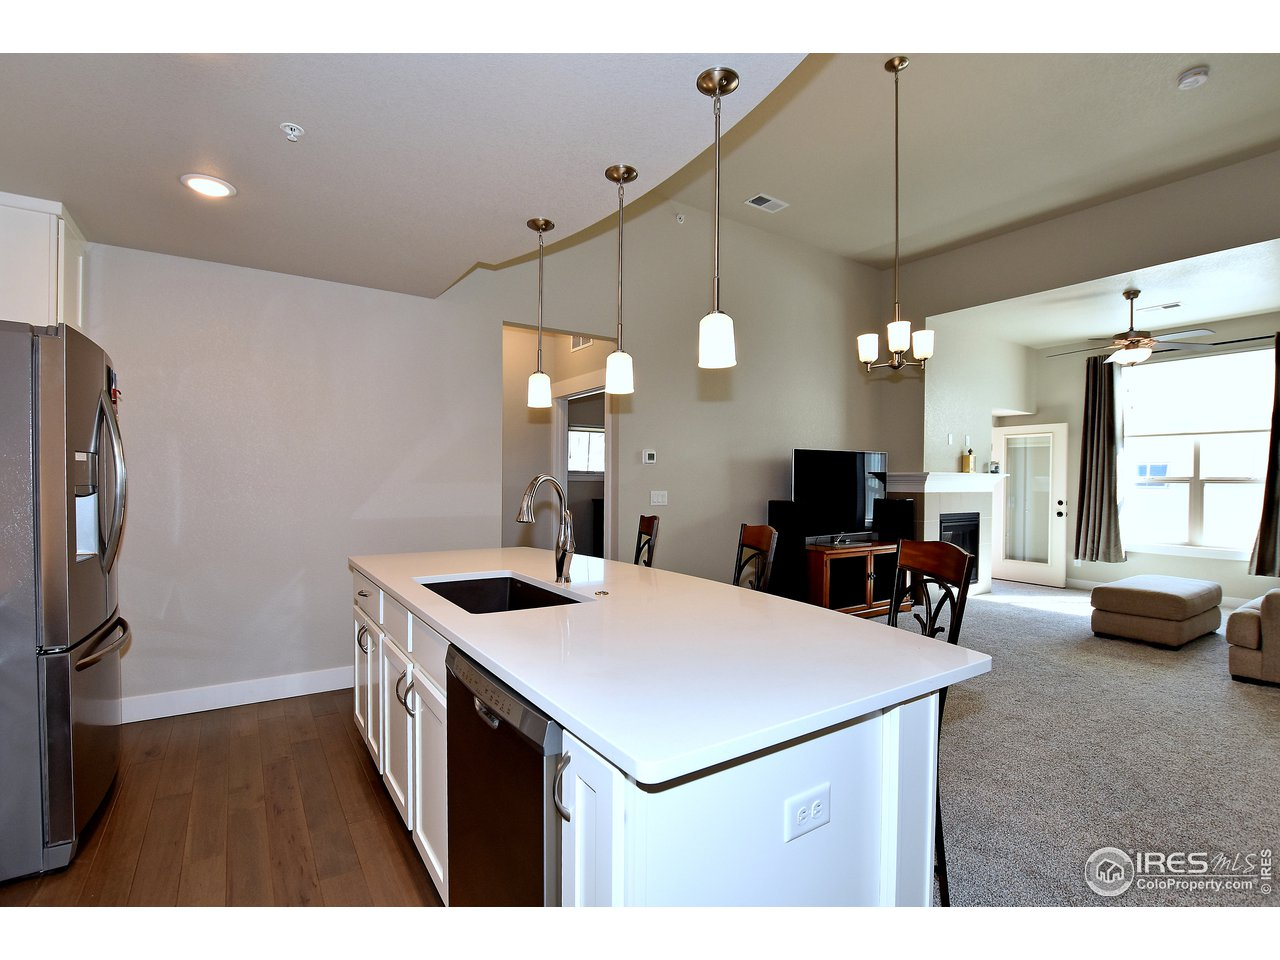 Kitchen overlooking great room and dining area